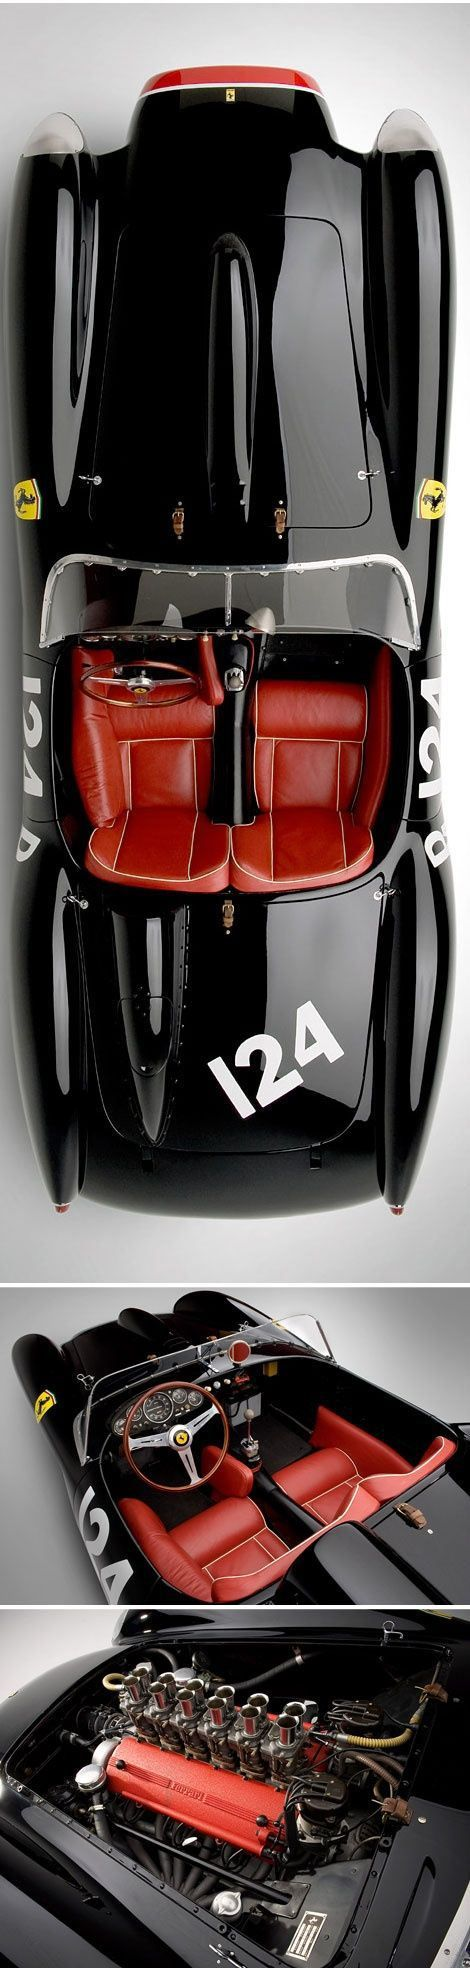 Ferrari 250 TR!!!..Re-pin brought to you by #bestrate #CarInsurance at #HouseofInsurance Eugene